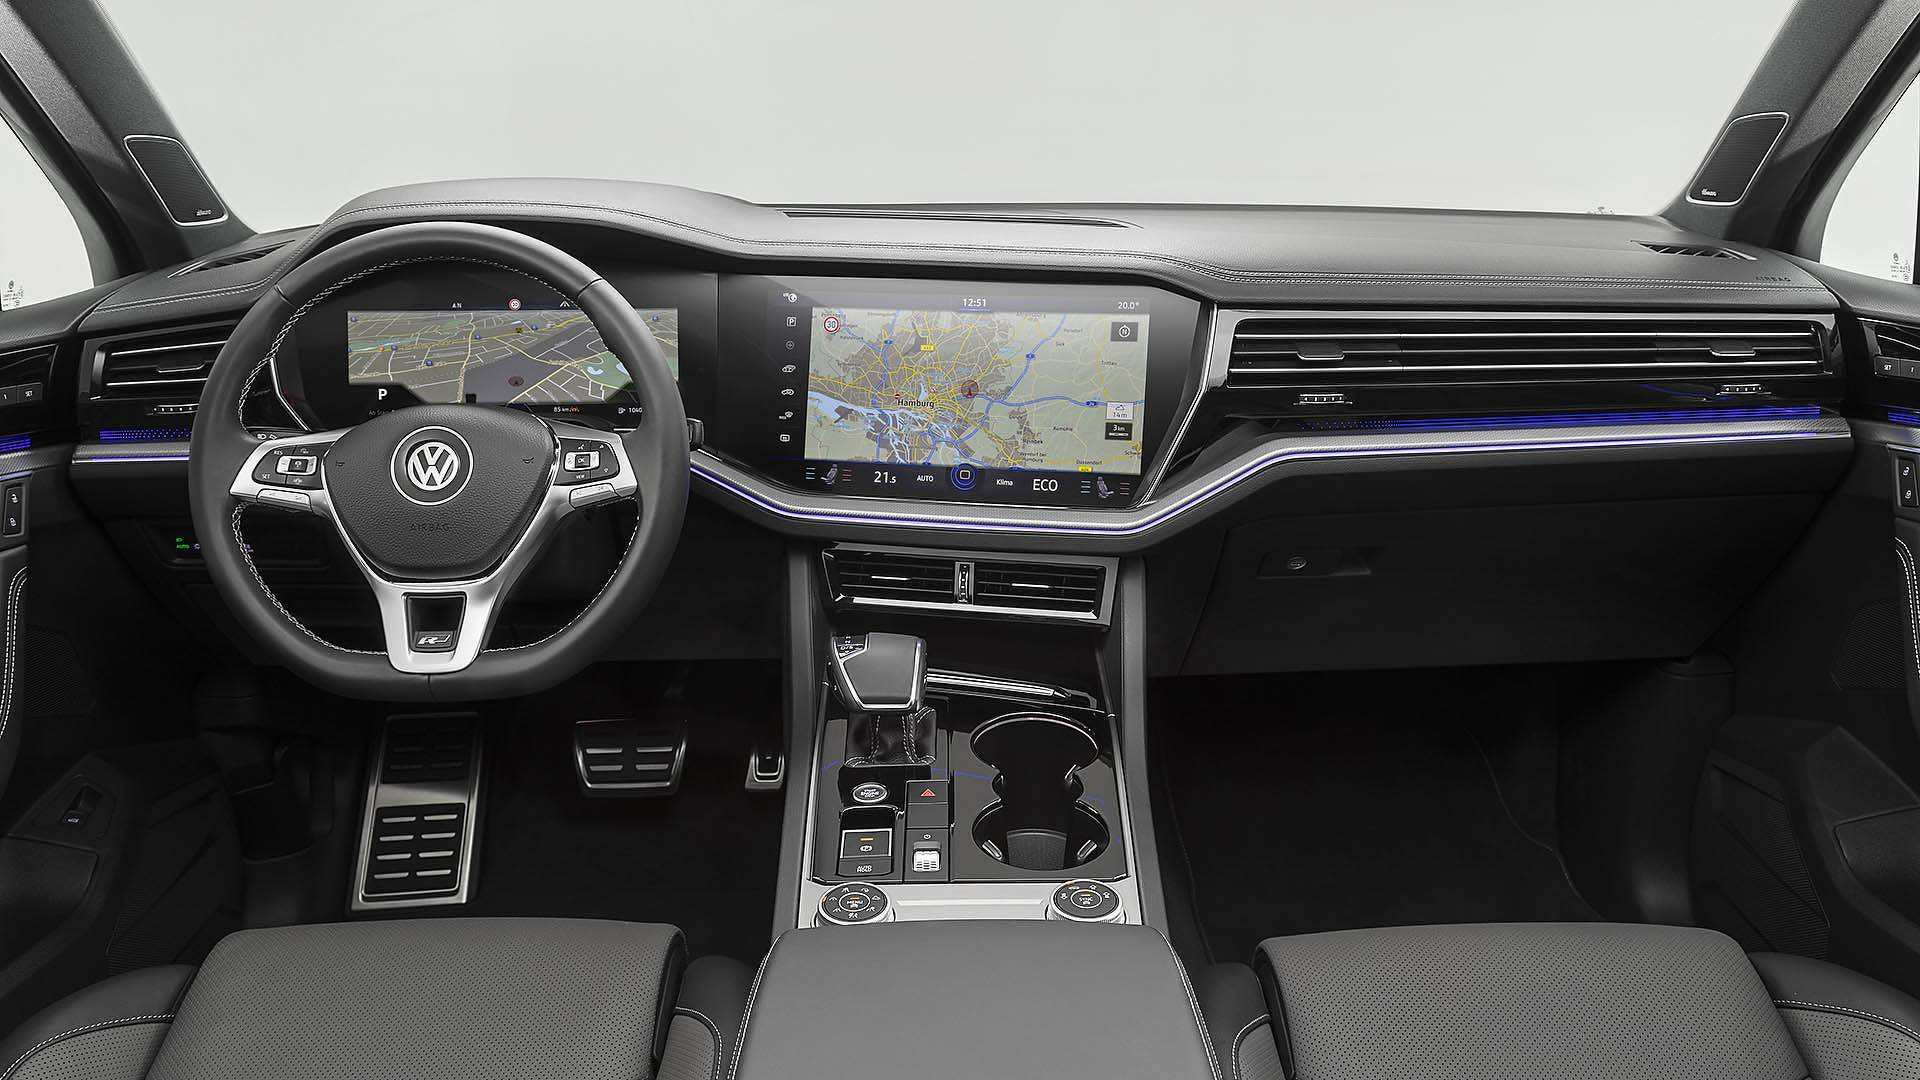 69 All New Vw Touareg 2019 Interior Specs